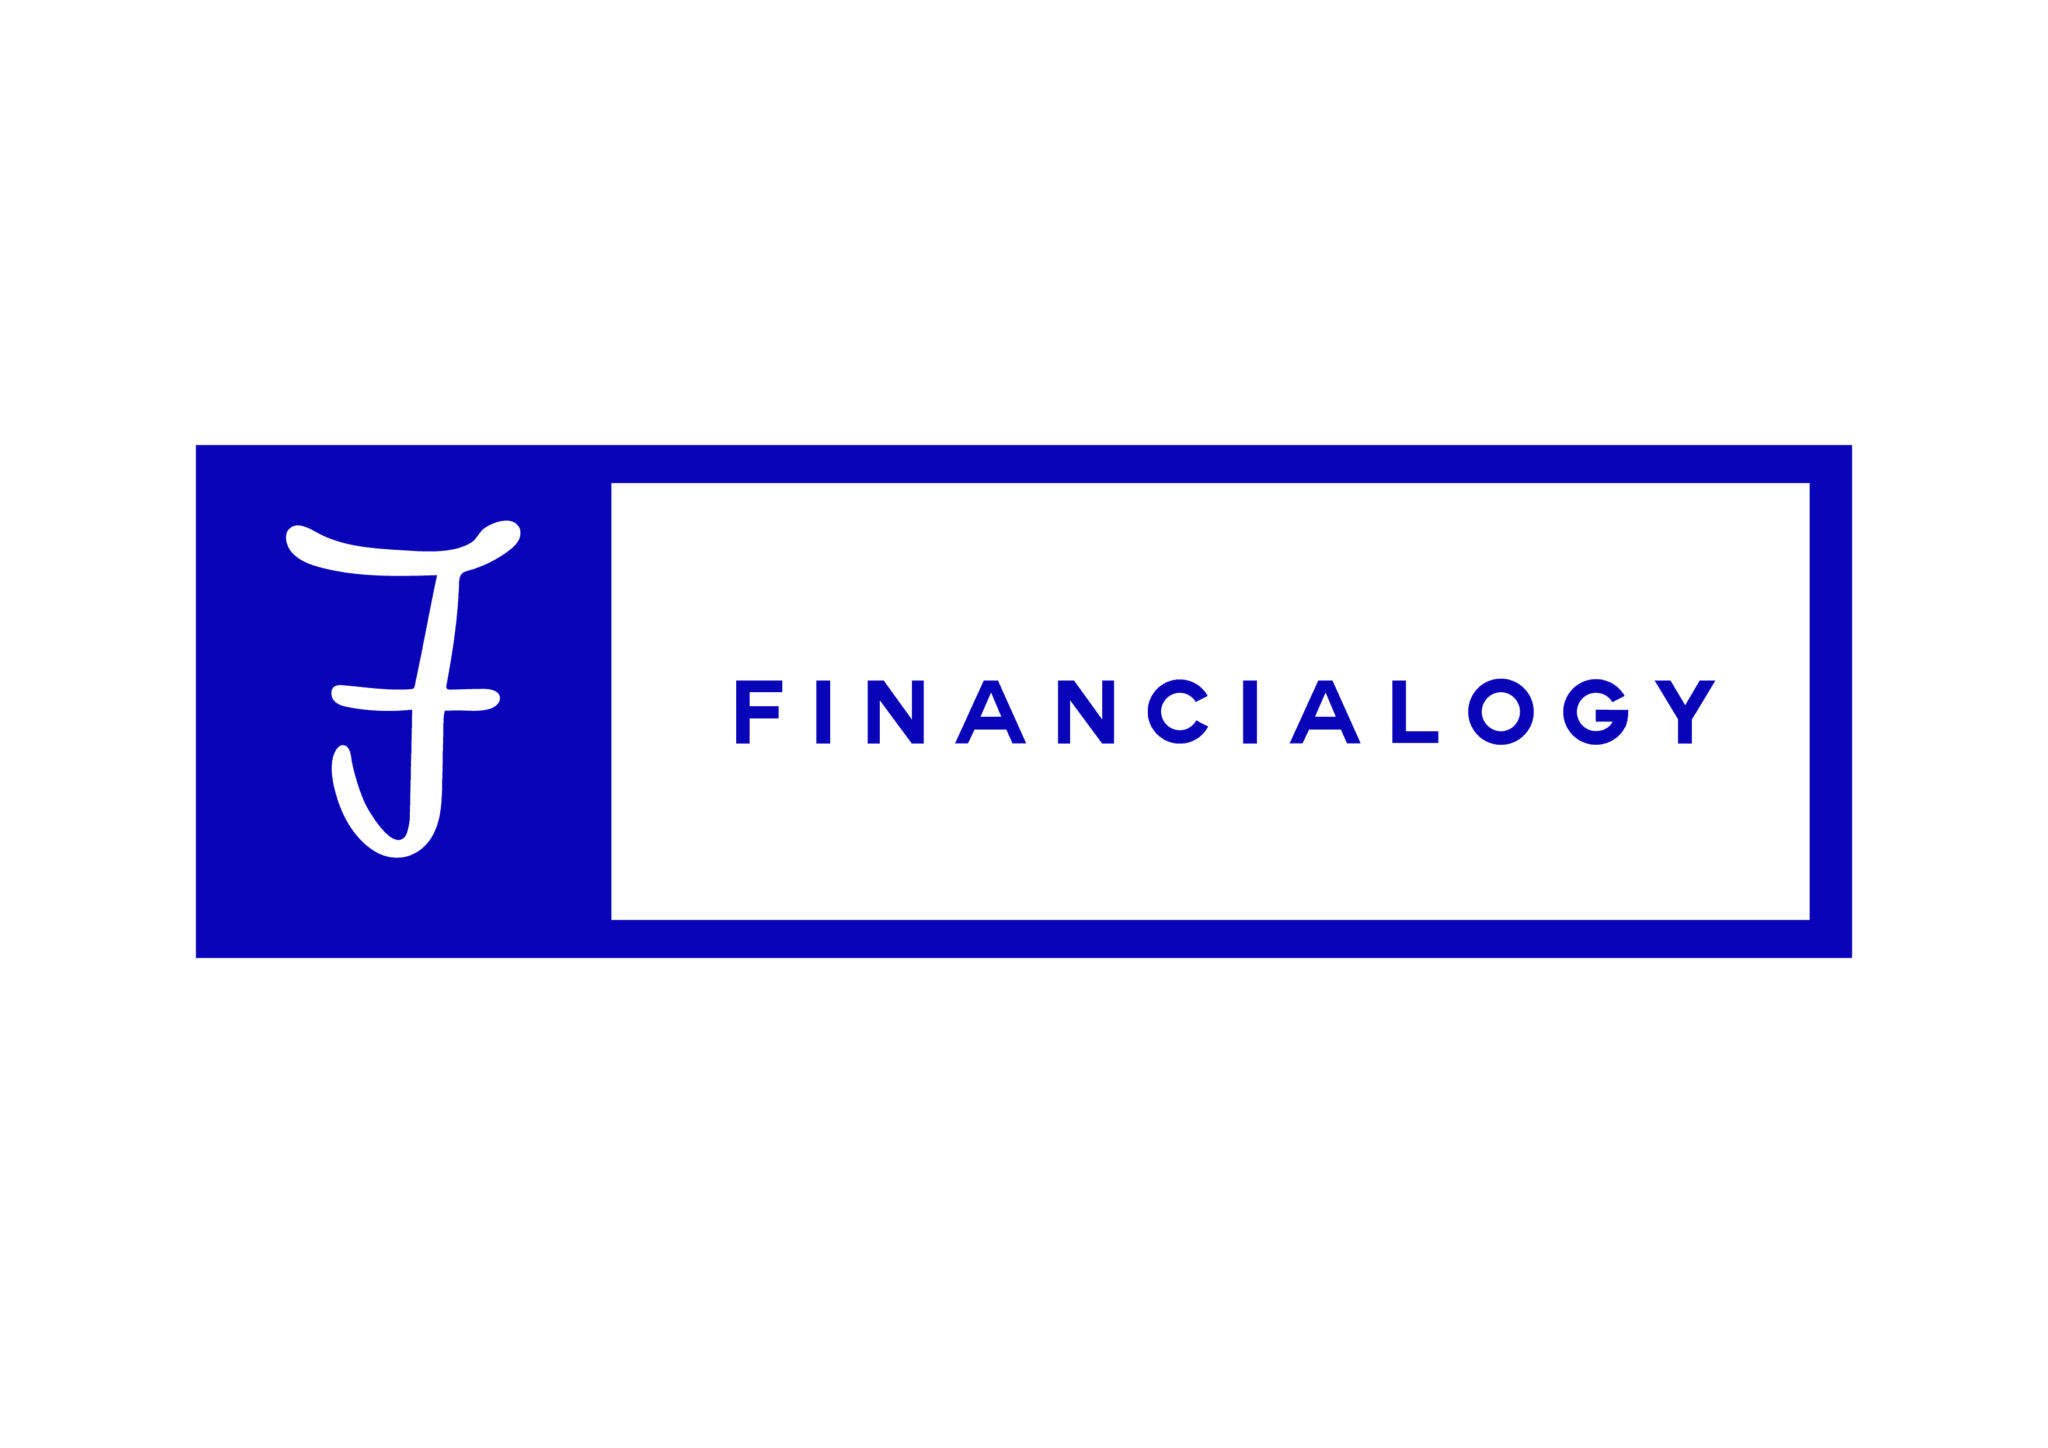 Financialogy